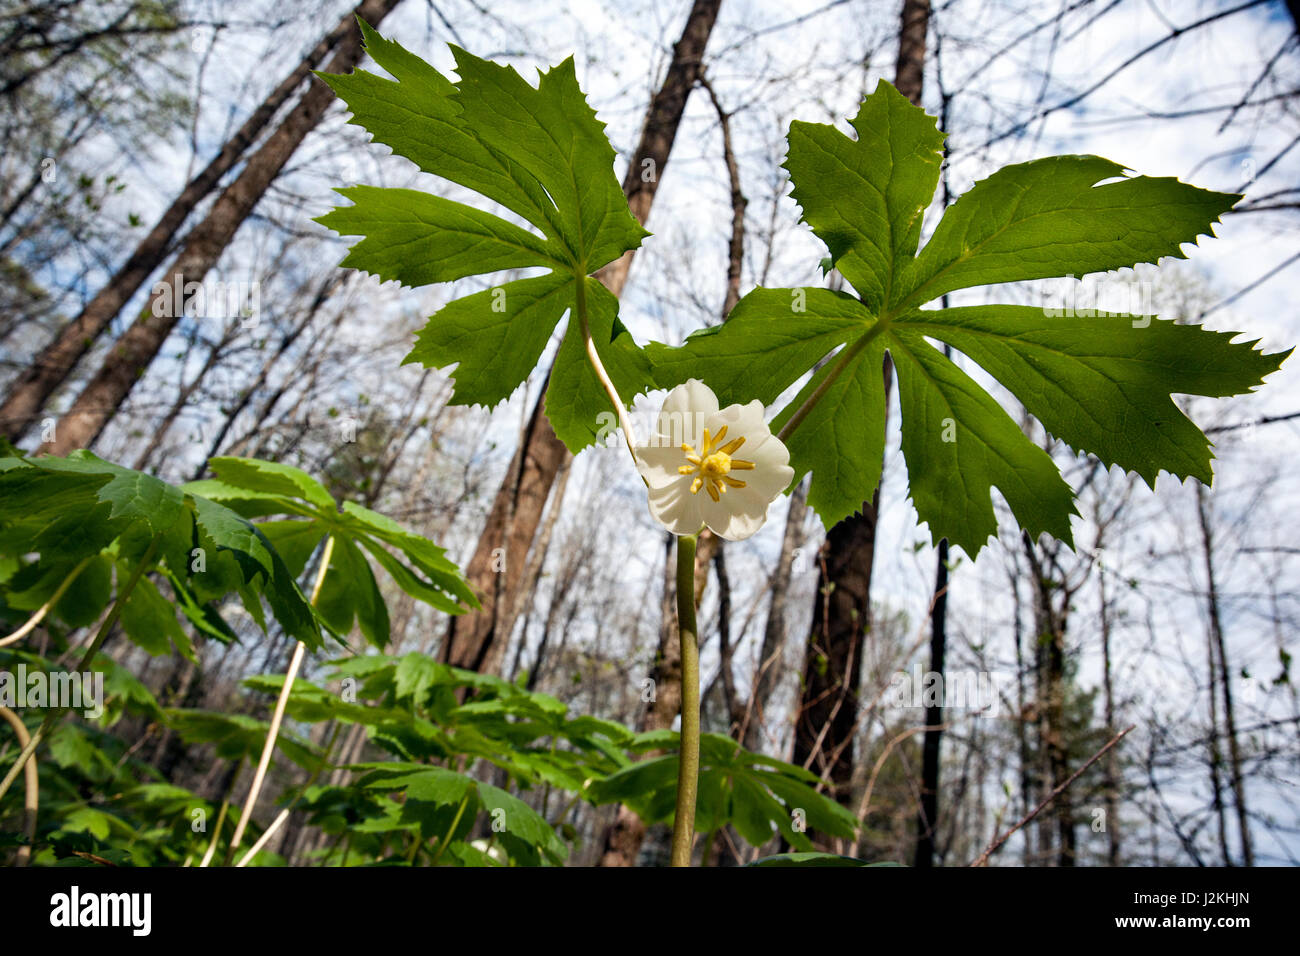 Mayapple (Podophyllum peltatum) - Holmes Educational State Forest, Hendersonville, North Carolina, USA Stock Photo